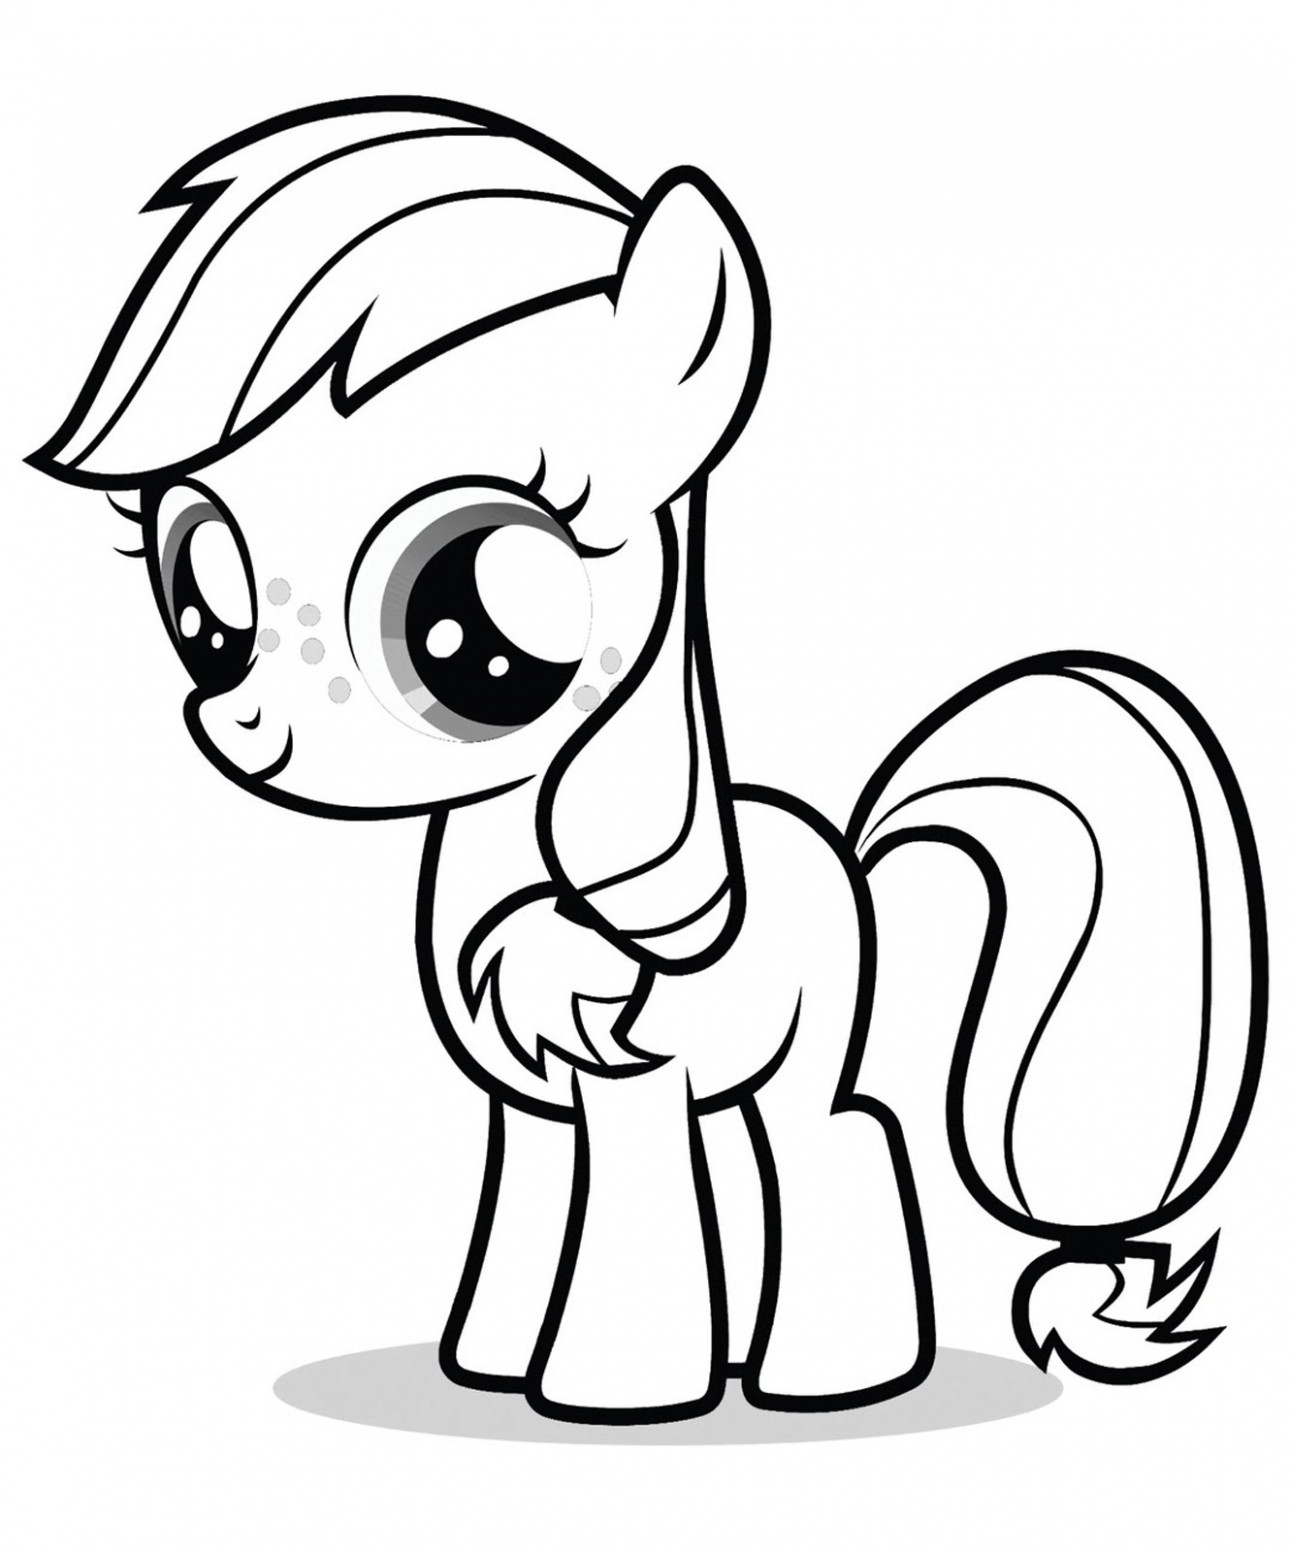 My Little Pony Coloring Pages Printable Download   Free Coloring Books – my little pony coloring book